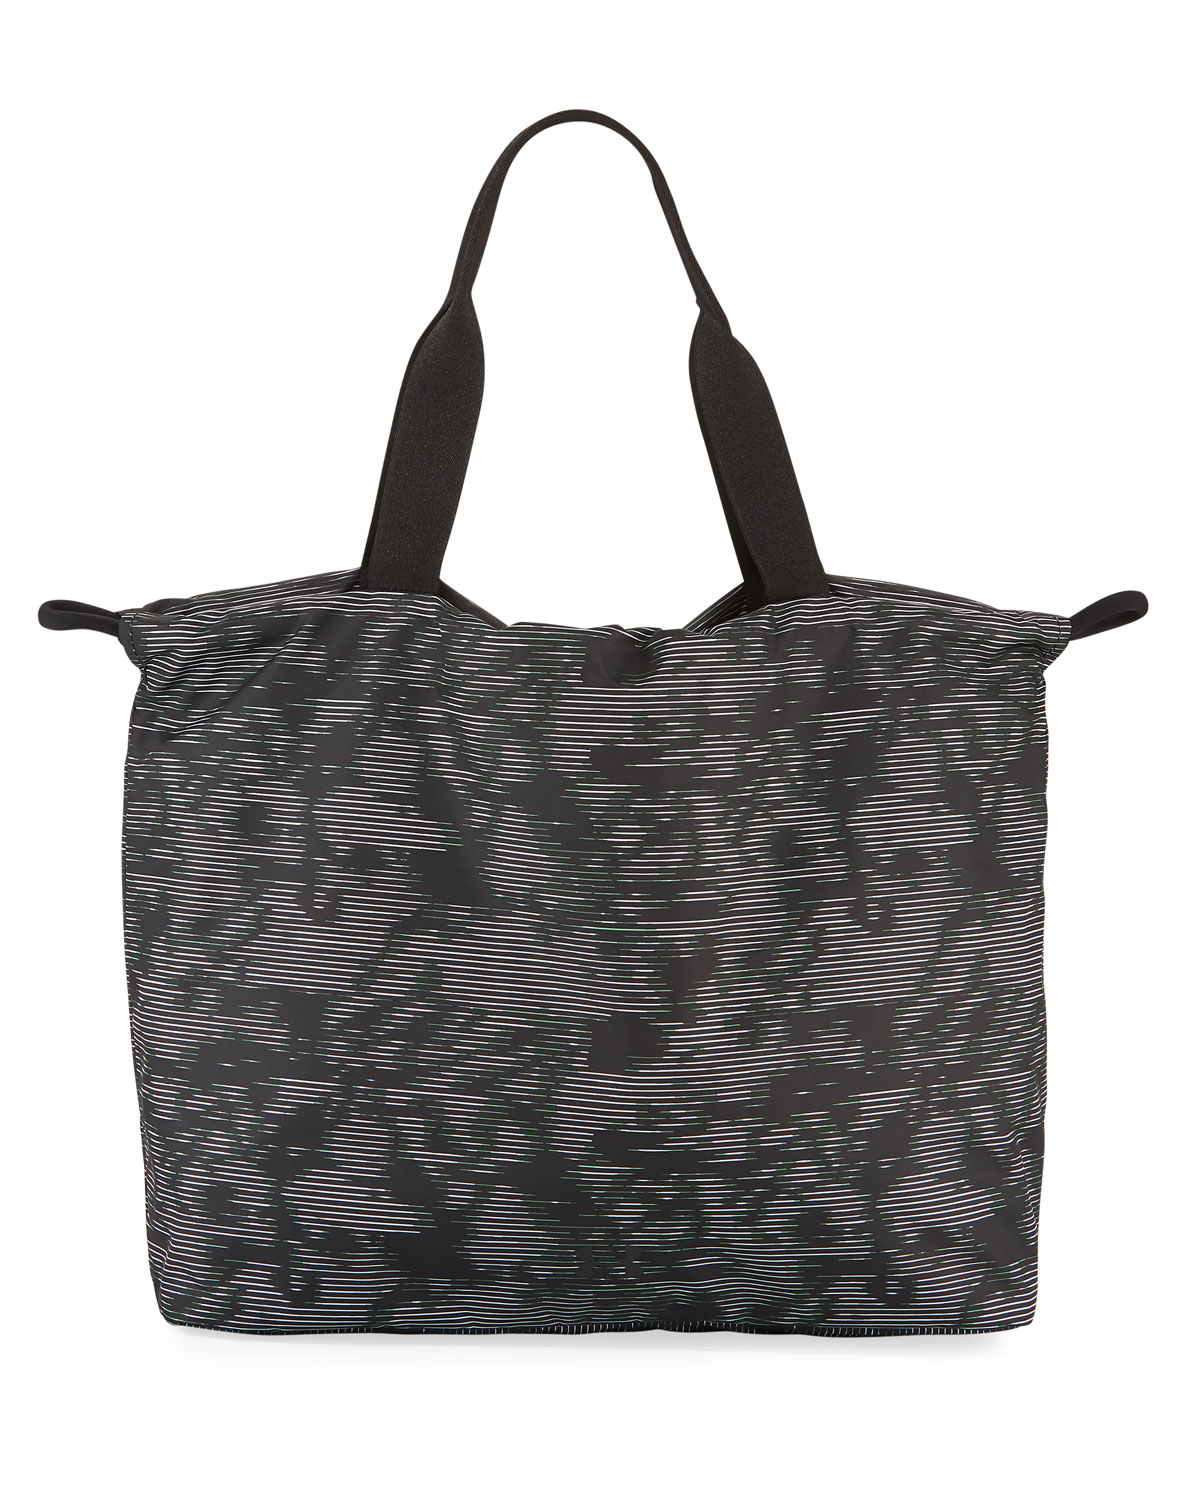 5d203bcee6a0 Under Armour Cinch Printed Gym Tote Bag